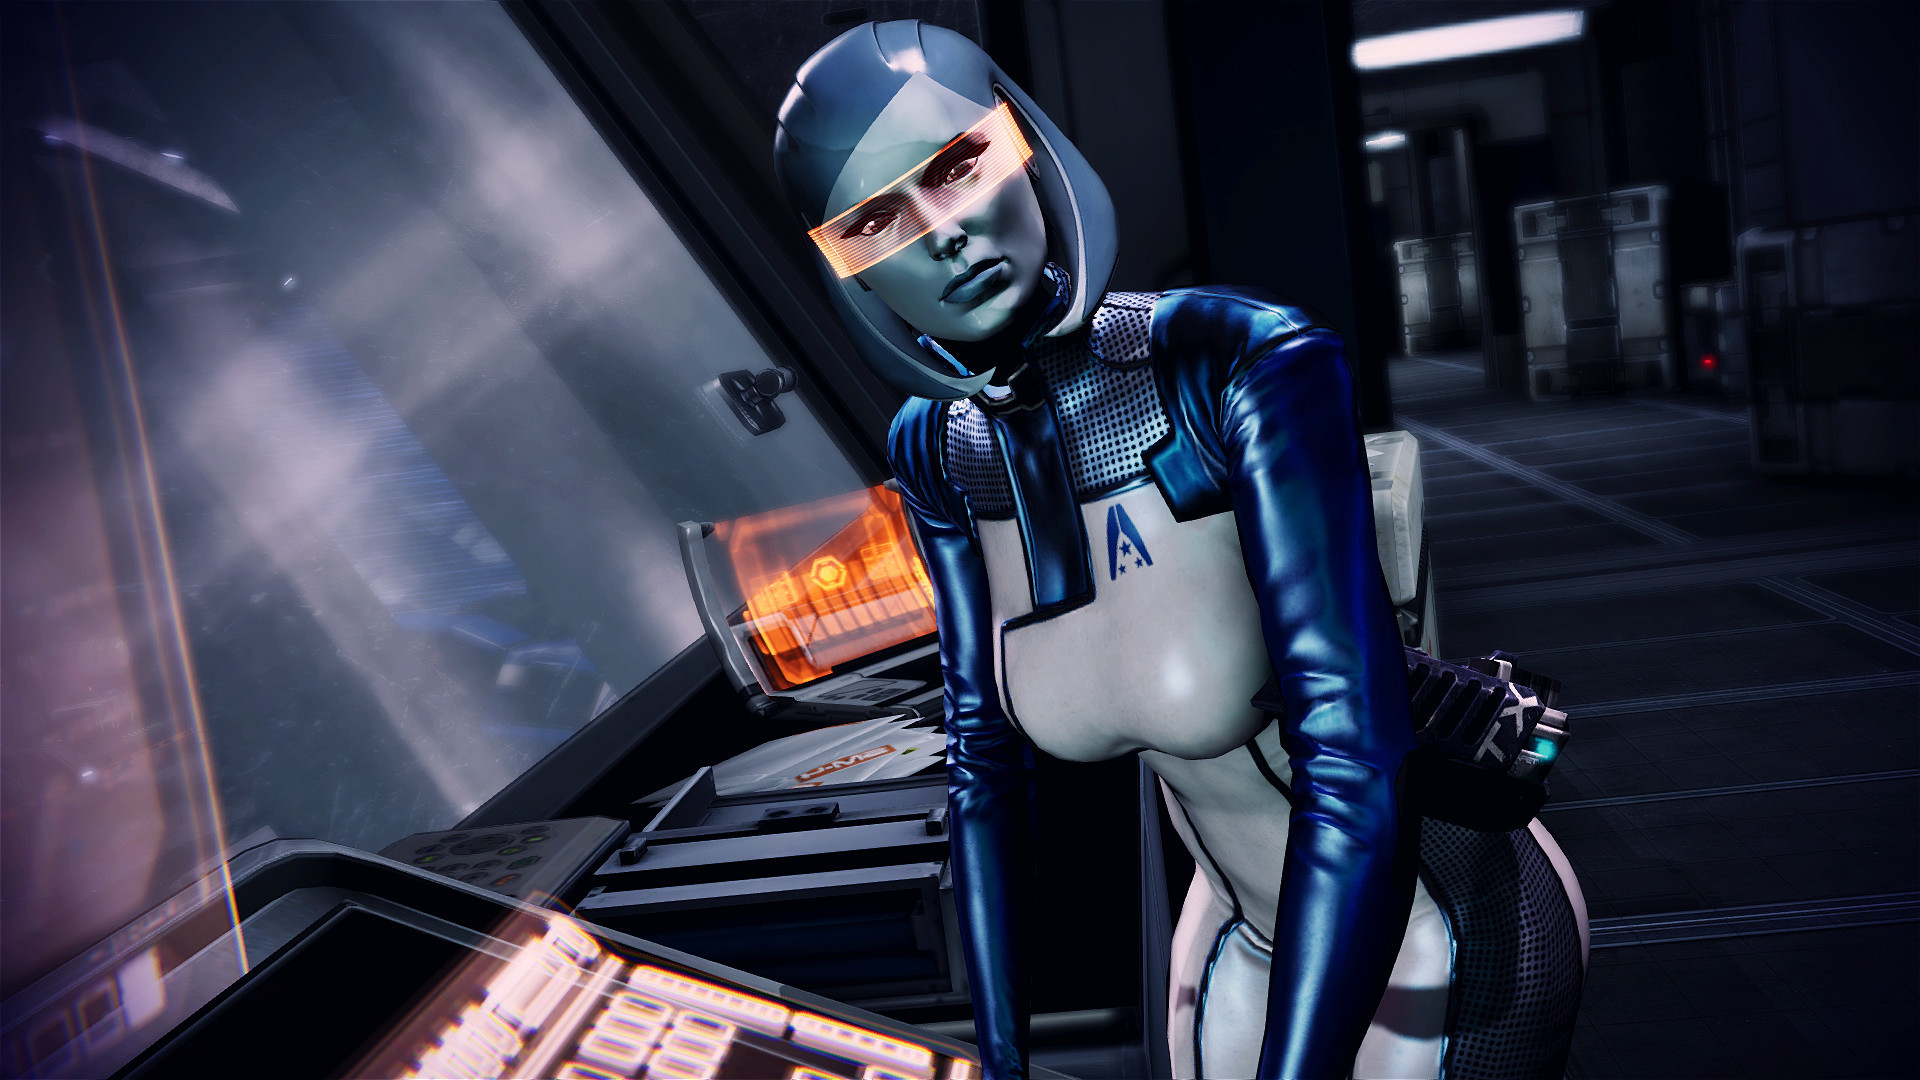 Mass effect robot porn naked photos